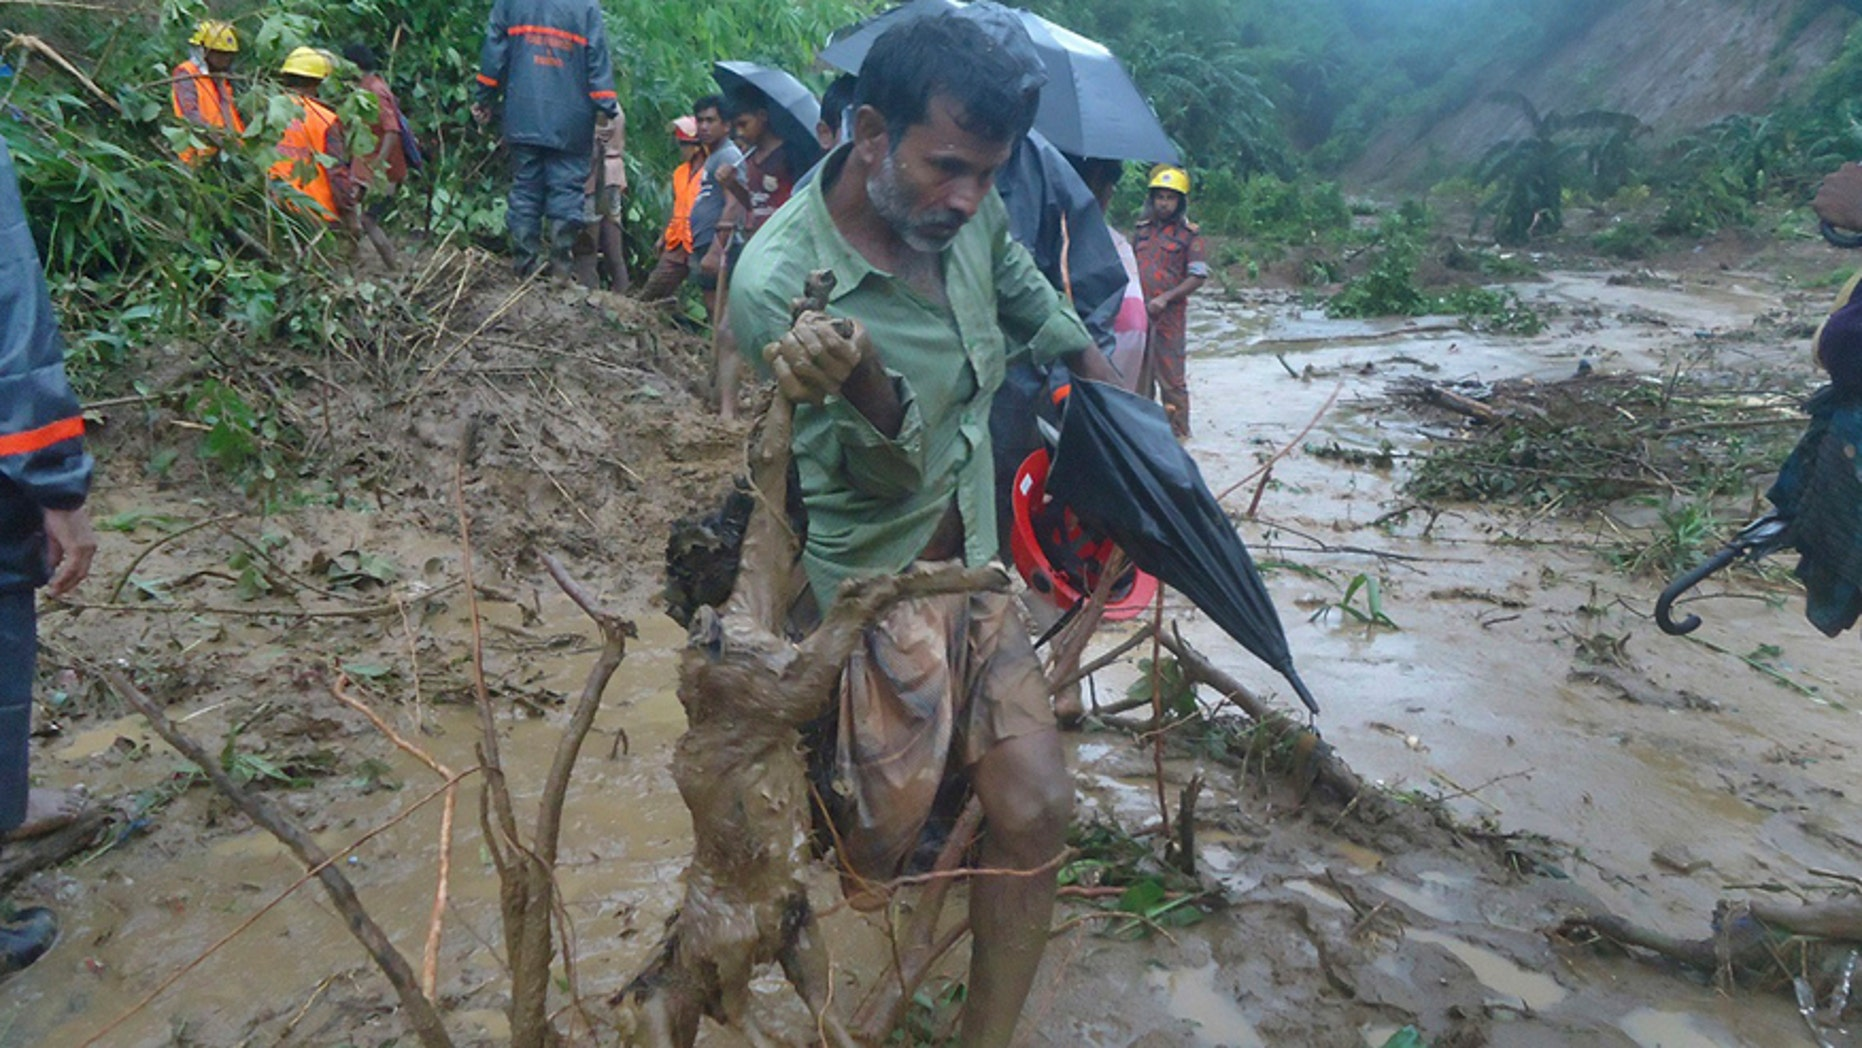 A man carries the carcass of a goat as rescuers search amid the mud after a landslide in Bandarban, Bangladesh, Tuesday, June 13, 2017. Heavy rains triggered landslides that killed dozens in southeast Bangladesh, officials said Tuesday, as police and soldiers struggled to reach the remote districts with aid. (AP Photo)